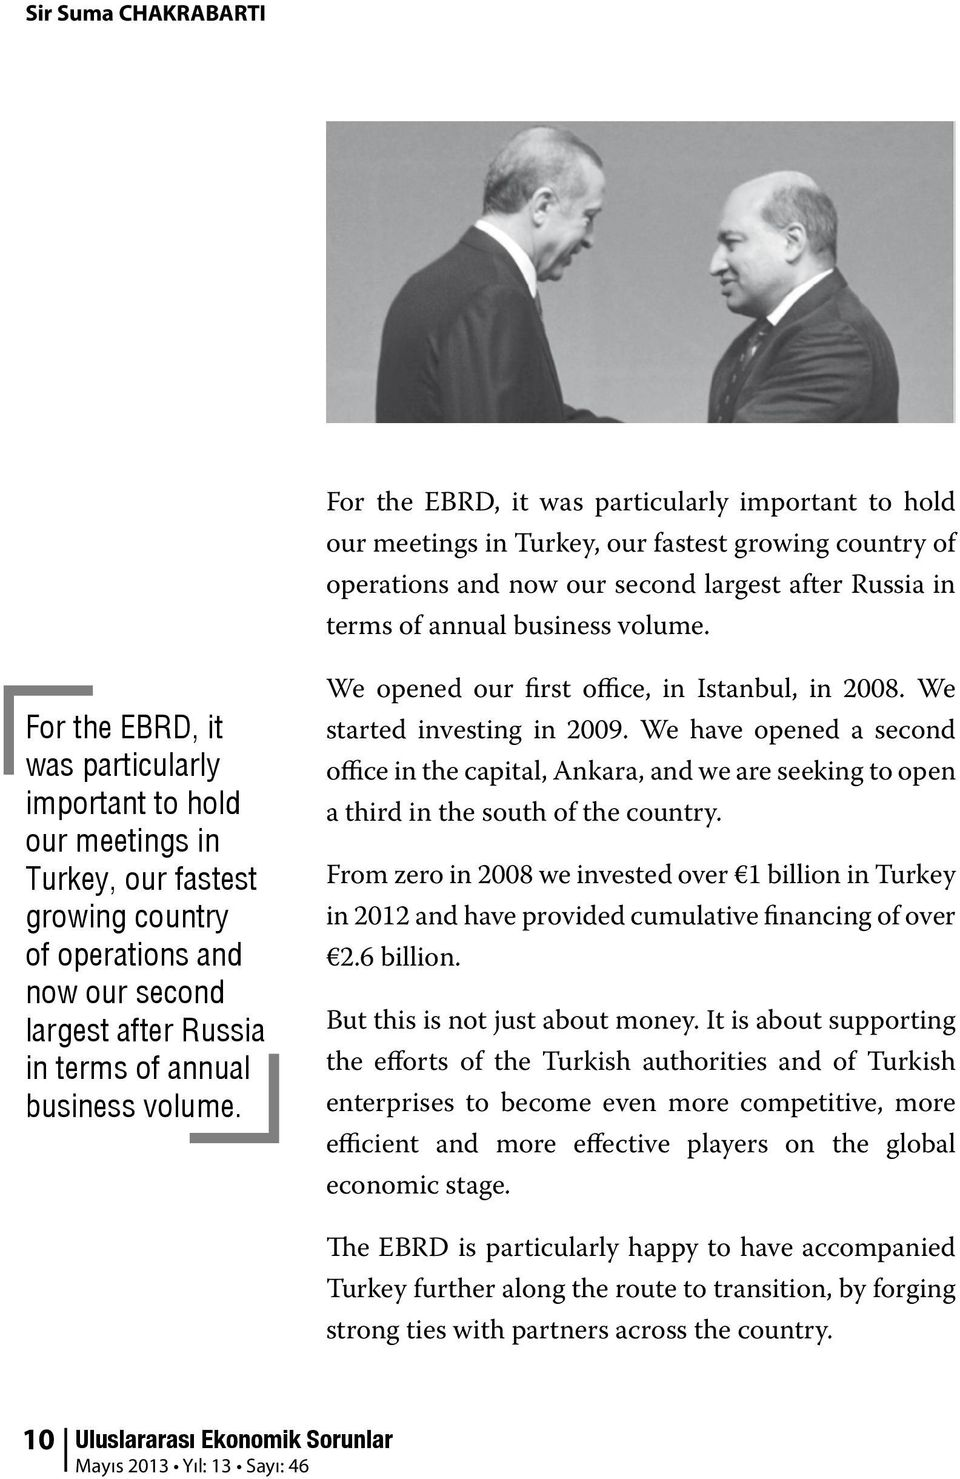 For the EBRD, it was particularly important to hold our meetings in Turkey, our fastest growing country of operations and now our second largest after Russia in terms of annual  We opened our first